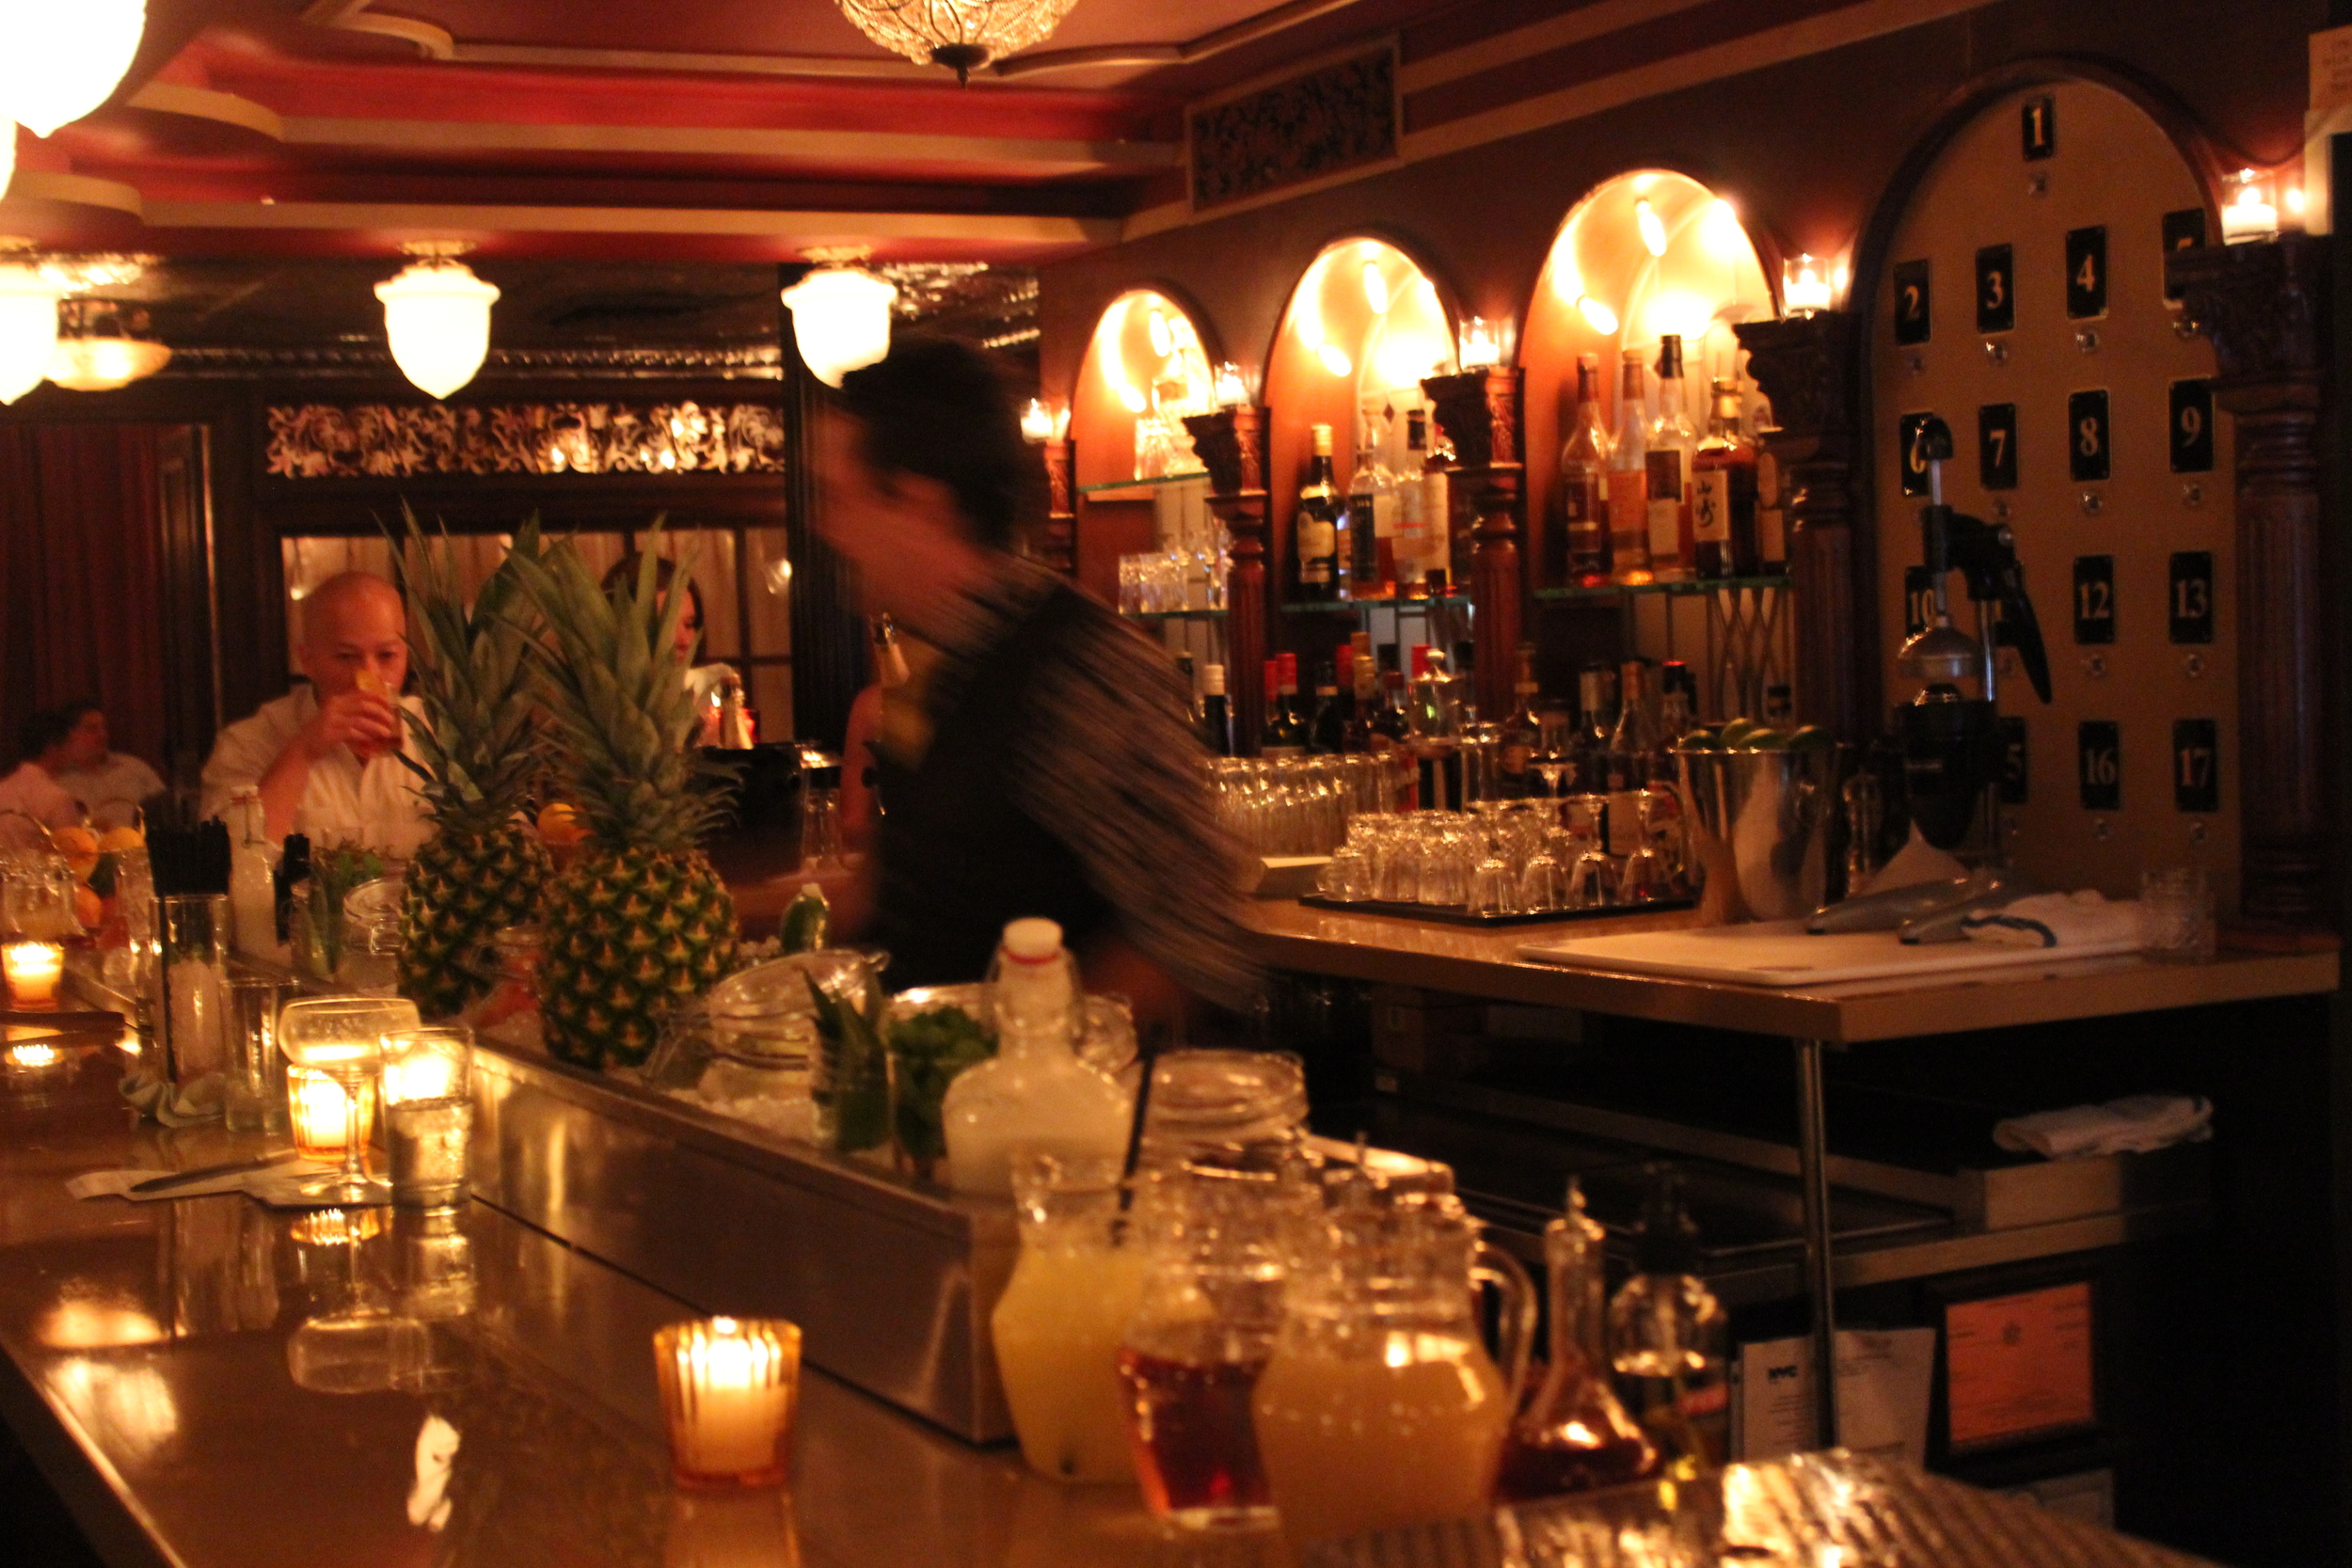 The Bartenders are SO FAST I could not capture them in the shot